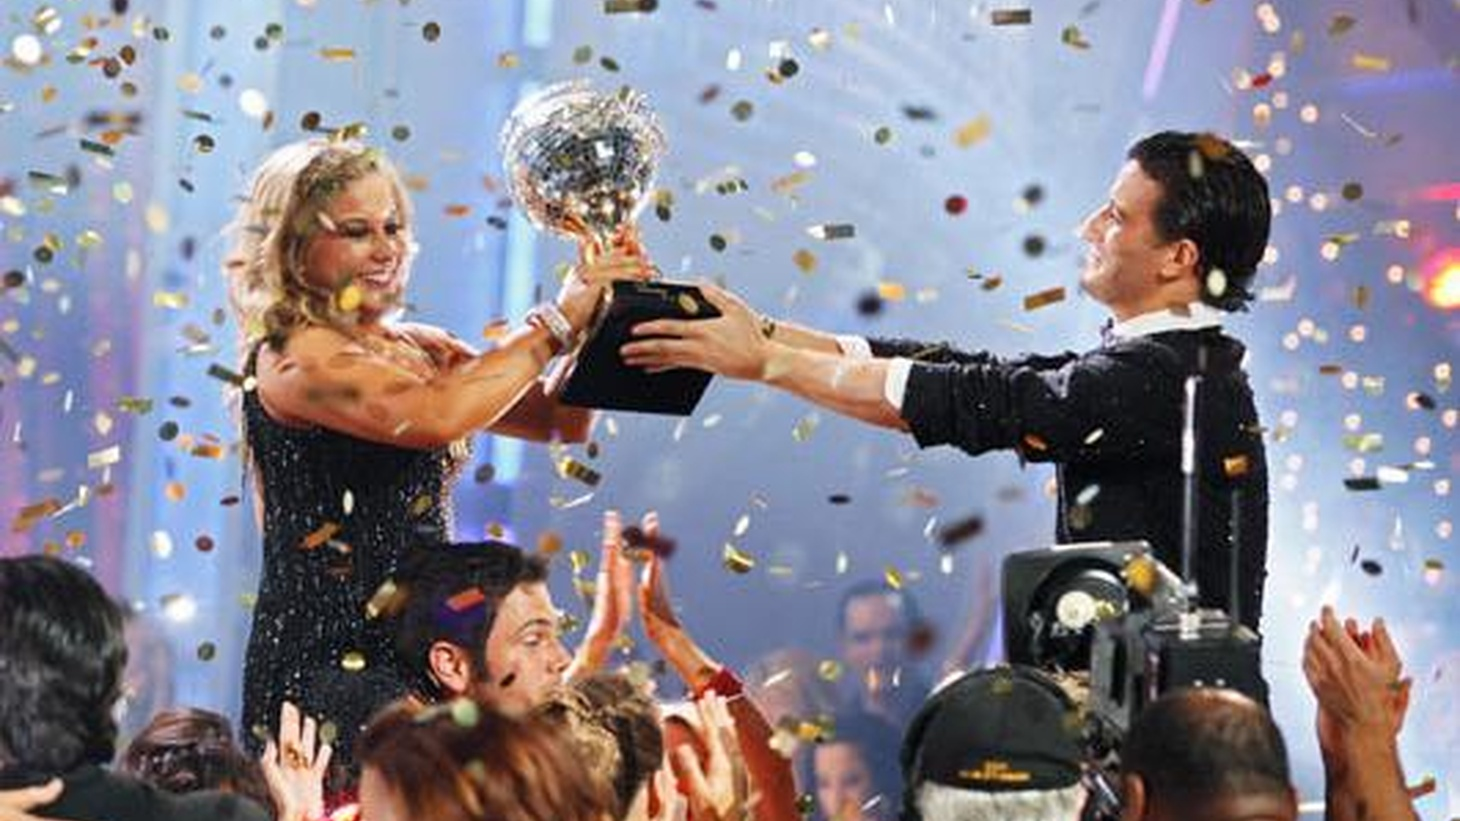 Shawn Johnson was a star of the Beijing Olympics last August. As of Tuesday night, with her upset win on Dancing with the Stars, Johnson's a much bigger star. It's a hard-hitting sign of our times that the trophy of a reality television show, a mirrored disco ball, carries more weight than an Olympic gold medal but even the hype and summer dominance of the Olympics can't compete with the sustained huge audiences that tune in by the many millions every week for almost three months to Dancing with the Stars...